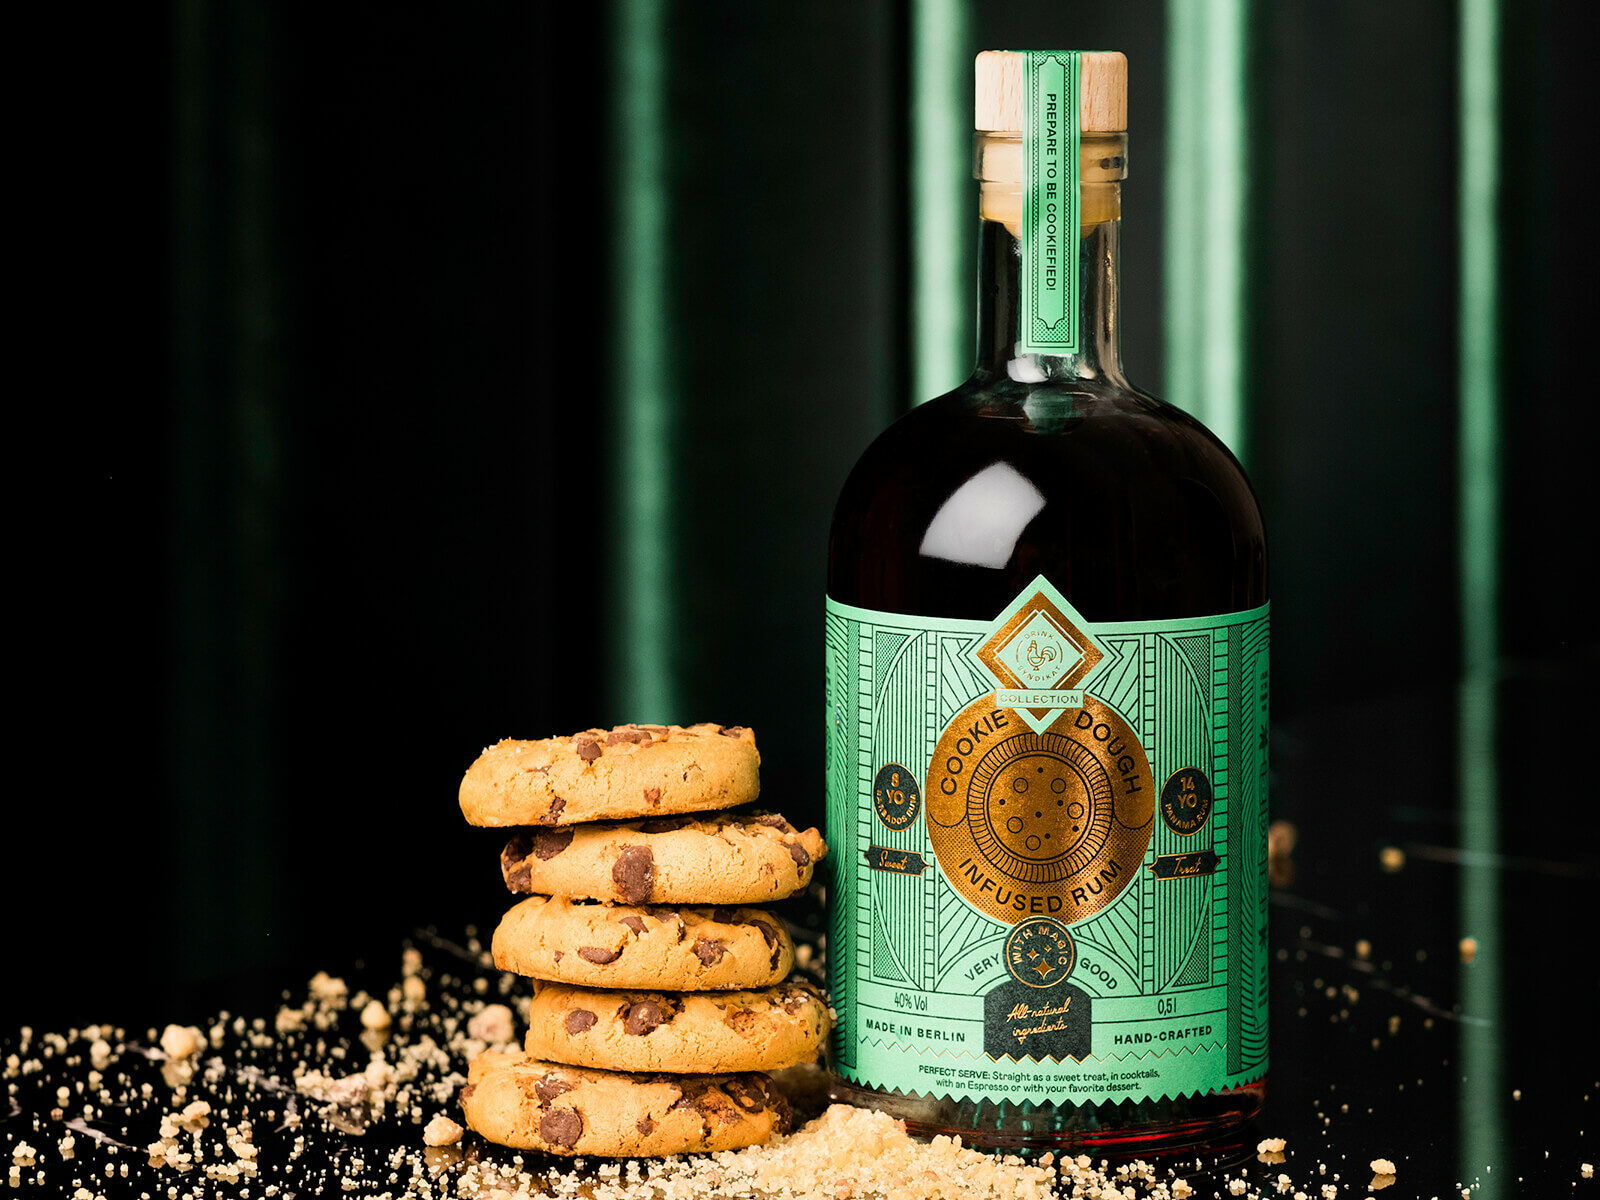 Die perfekte Dessert-Spirituose: Cookie Dough Infused Rum